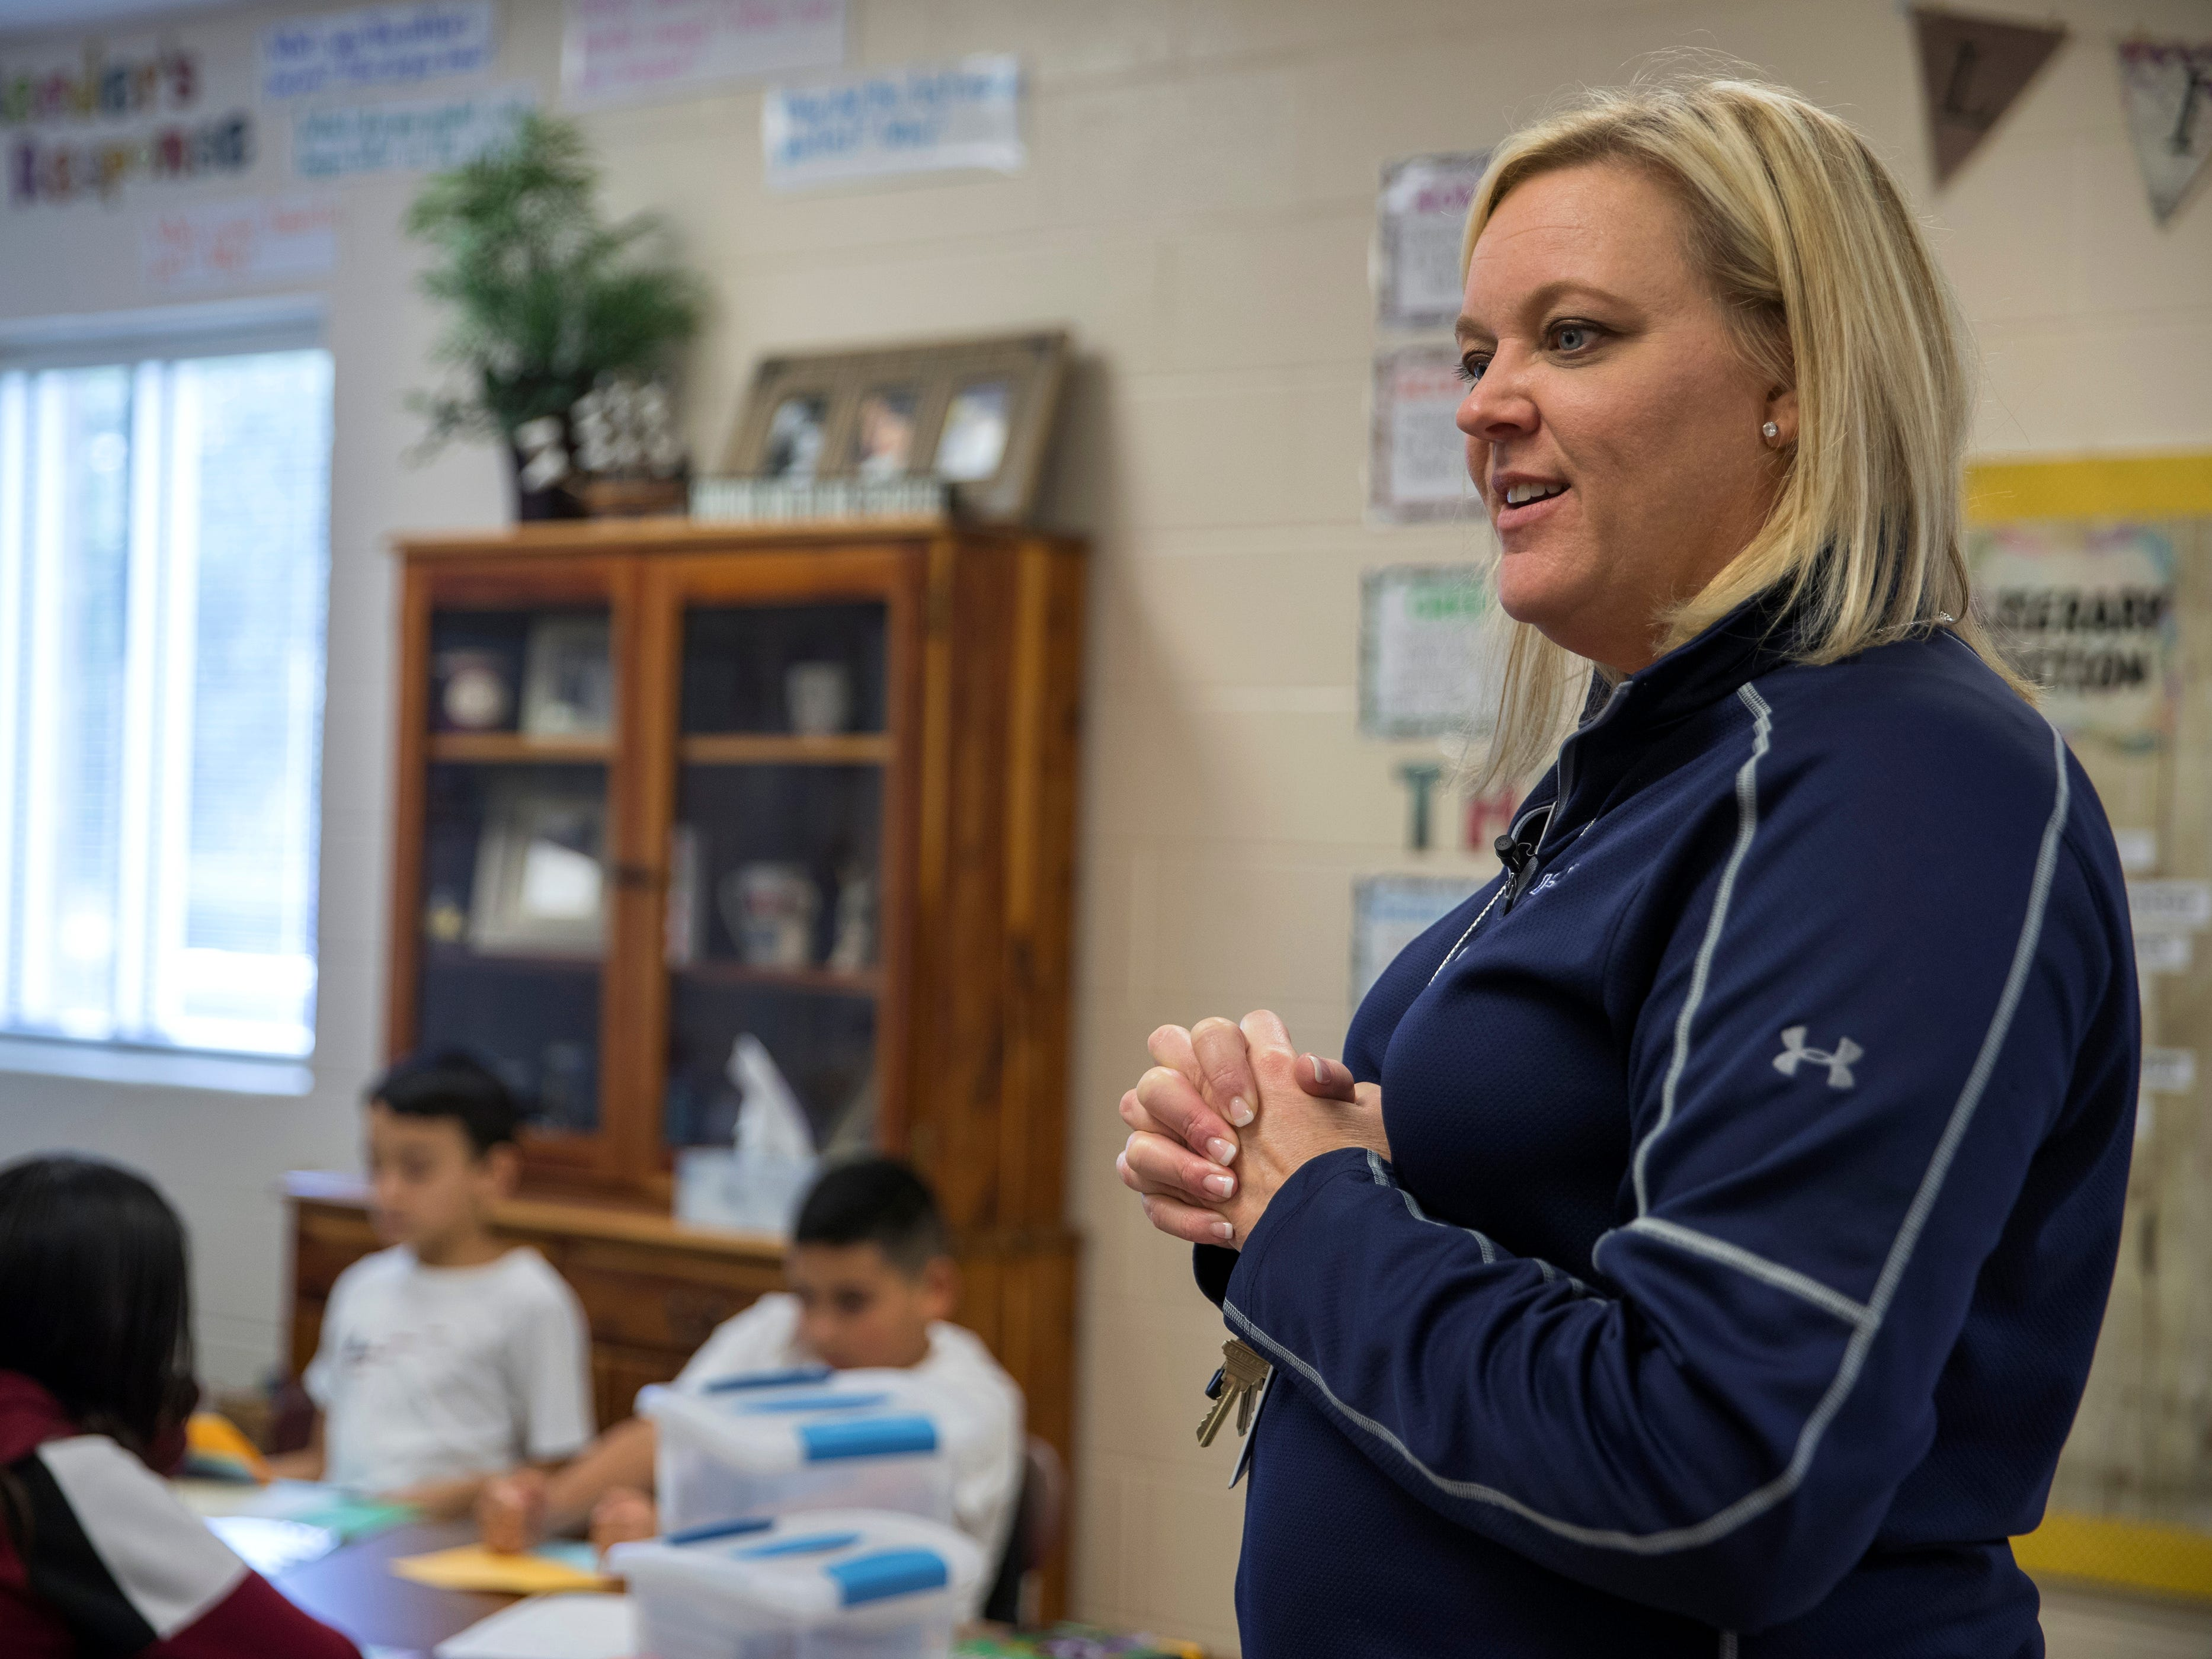 "Christine Kidd McFarland, a fifth-grade teacher at Sinton Elementary School in Sinton, Texas, listens as a student reads her assignment on Monday, September 17, 2018. ""In the morning I get up with hopes of making a difference in the lives of a child. Knowing that they're going to come to me and they don't want to be at school most of them, but I want them to know they have a safe place to go with someone who cares about them and wants them to learn, she said."""